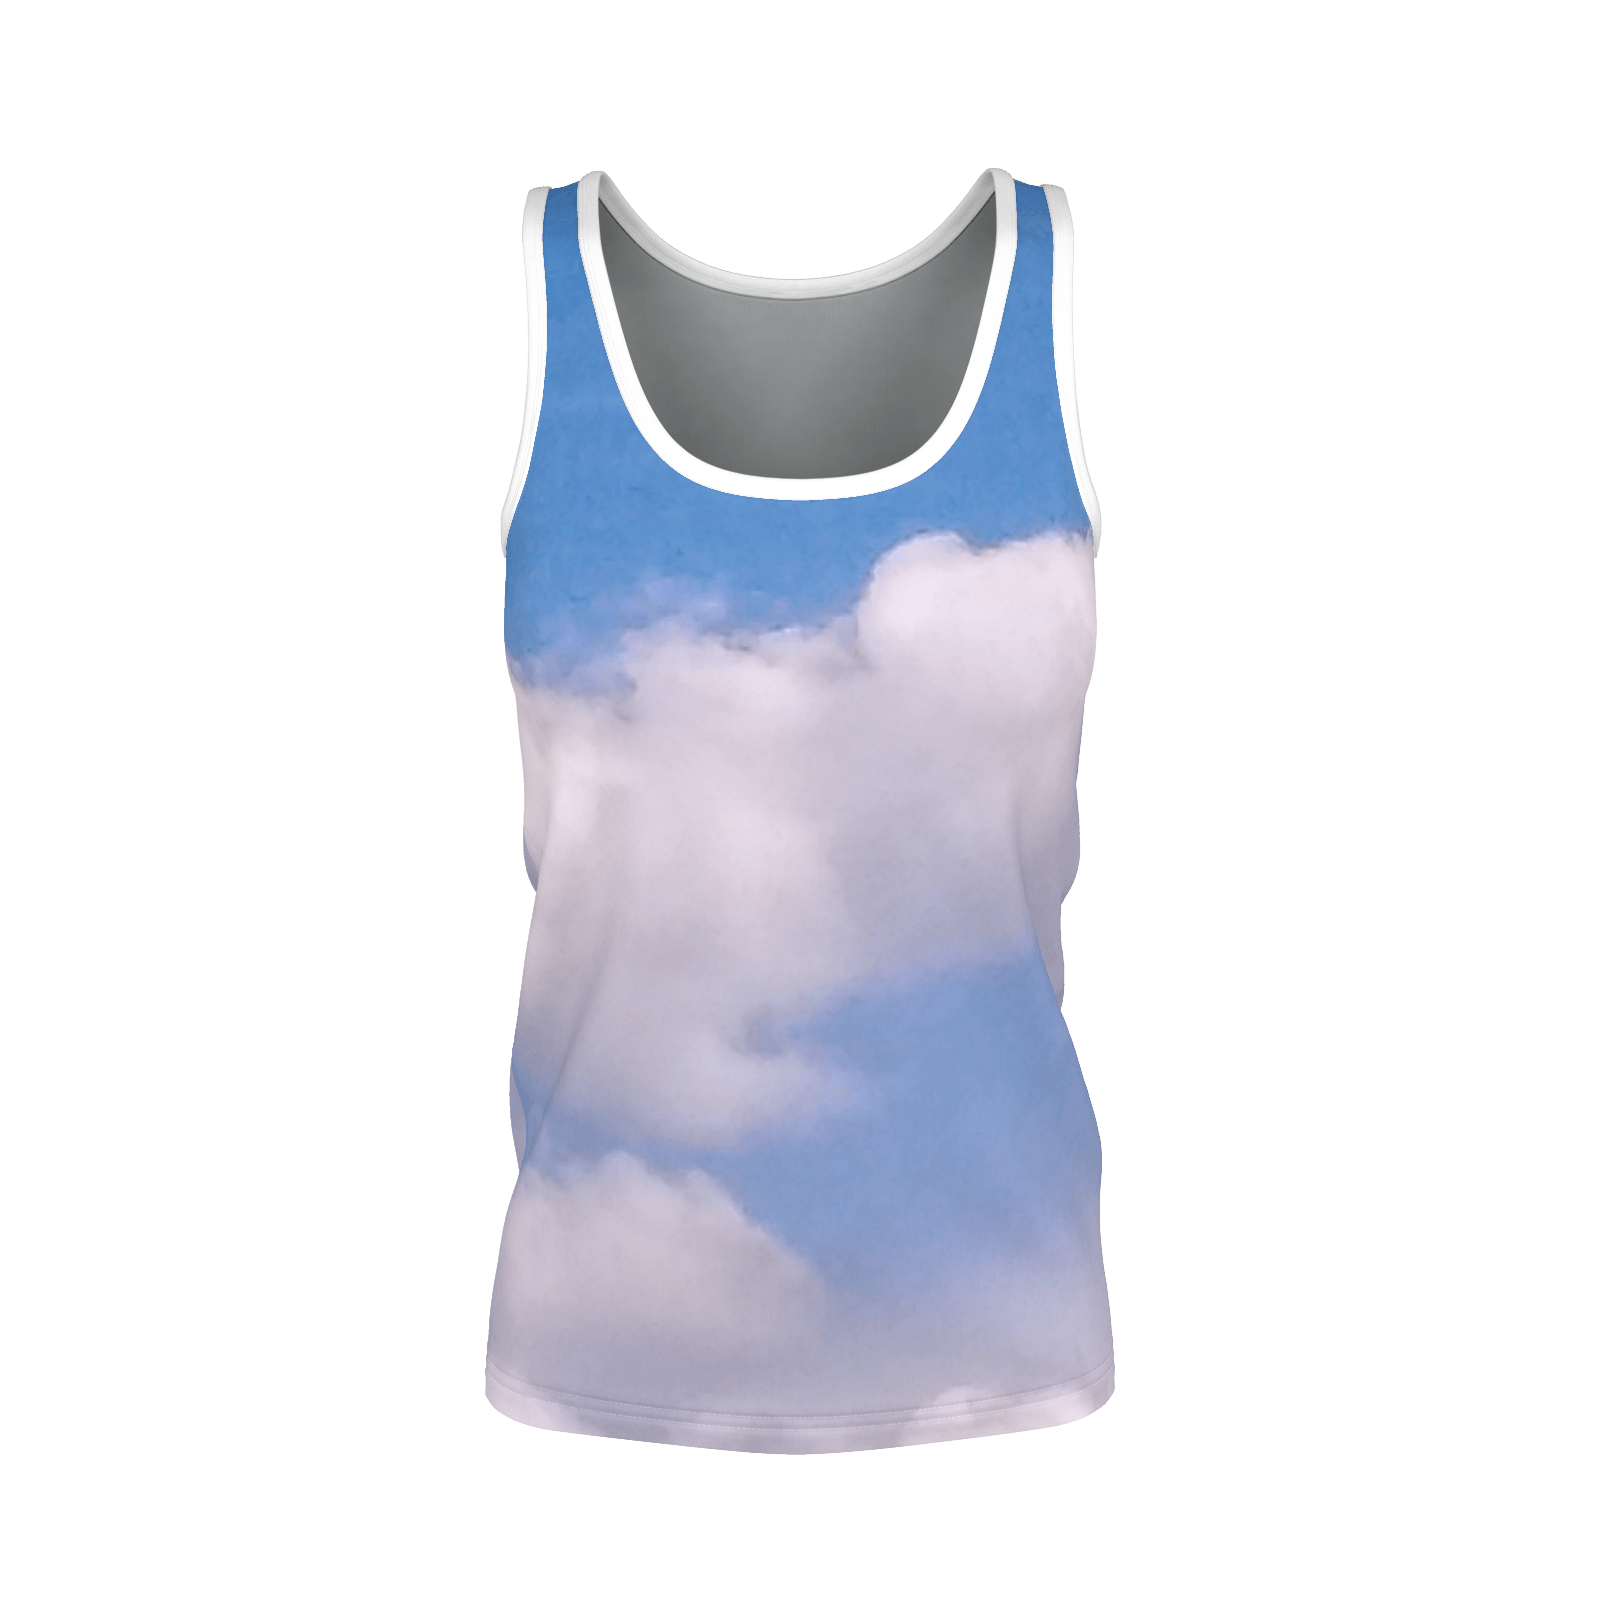 Yoga Sexy WhiteFluffy Tank Top - Yoga Sexy